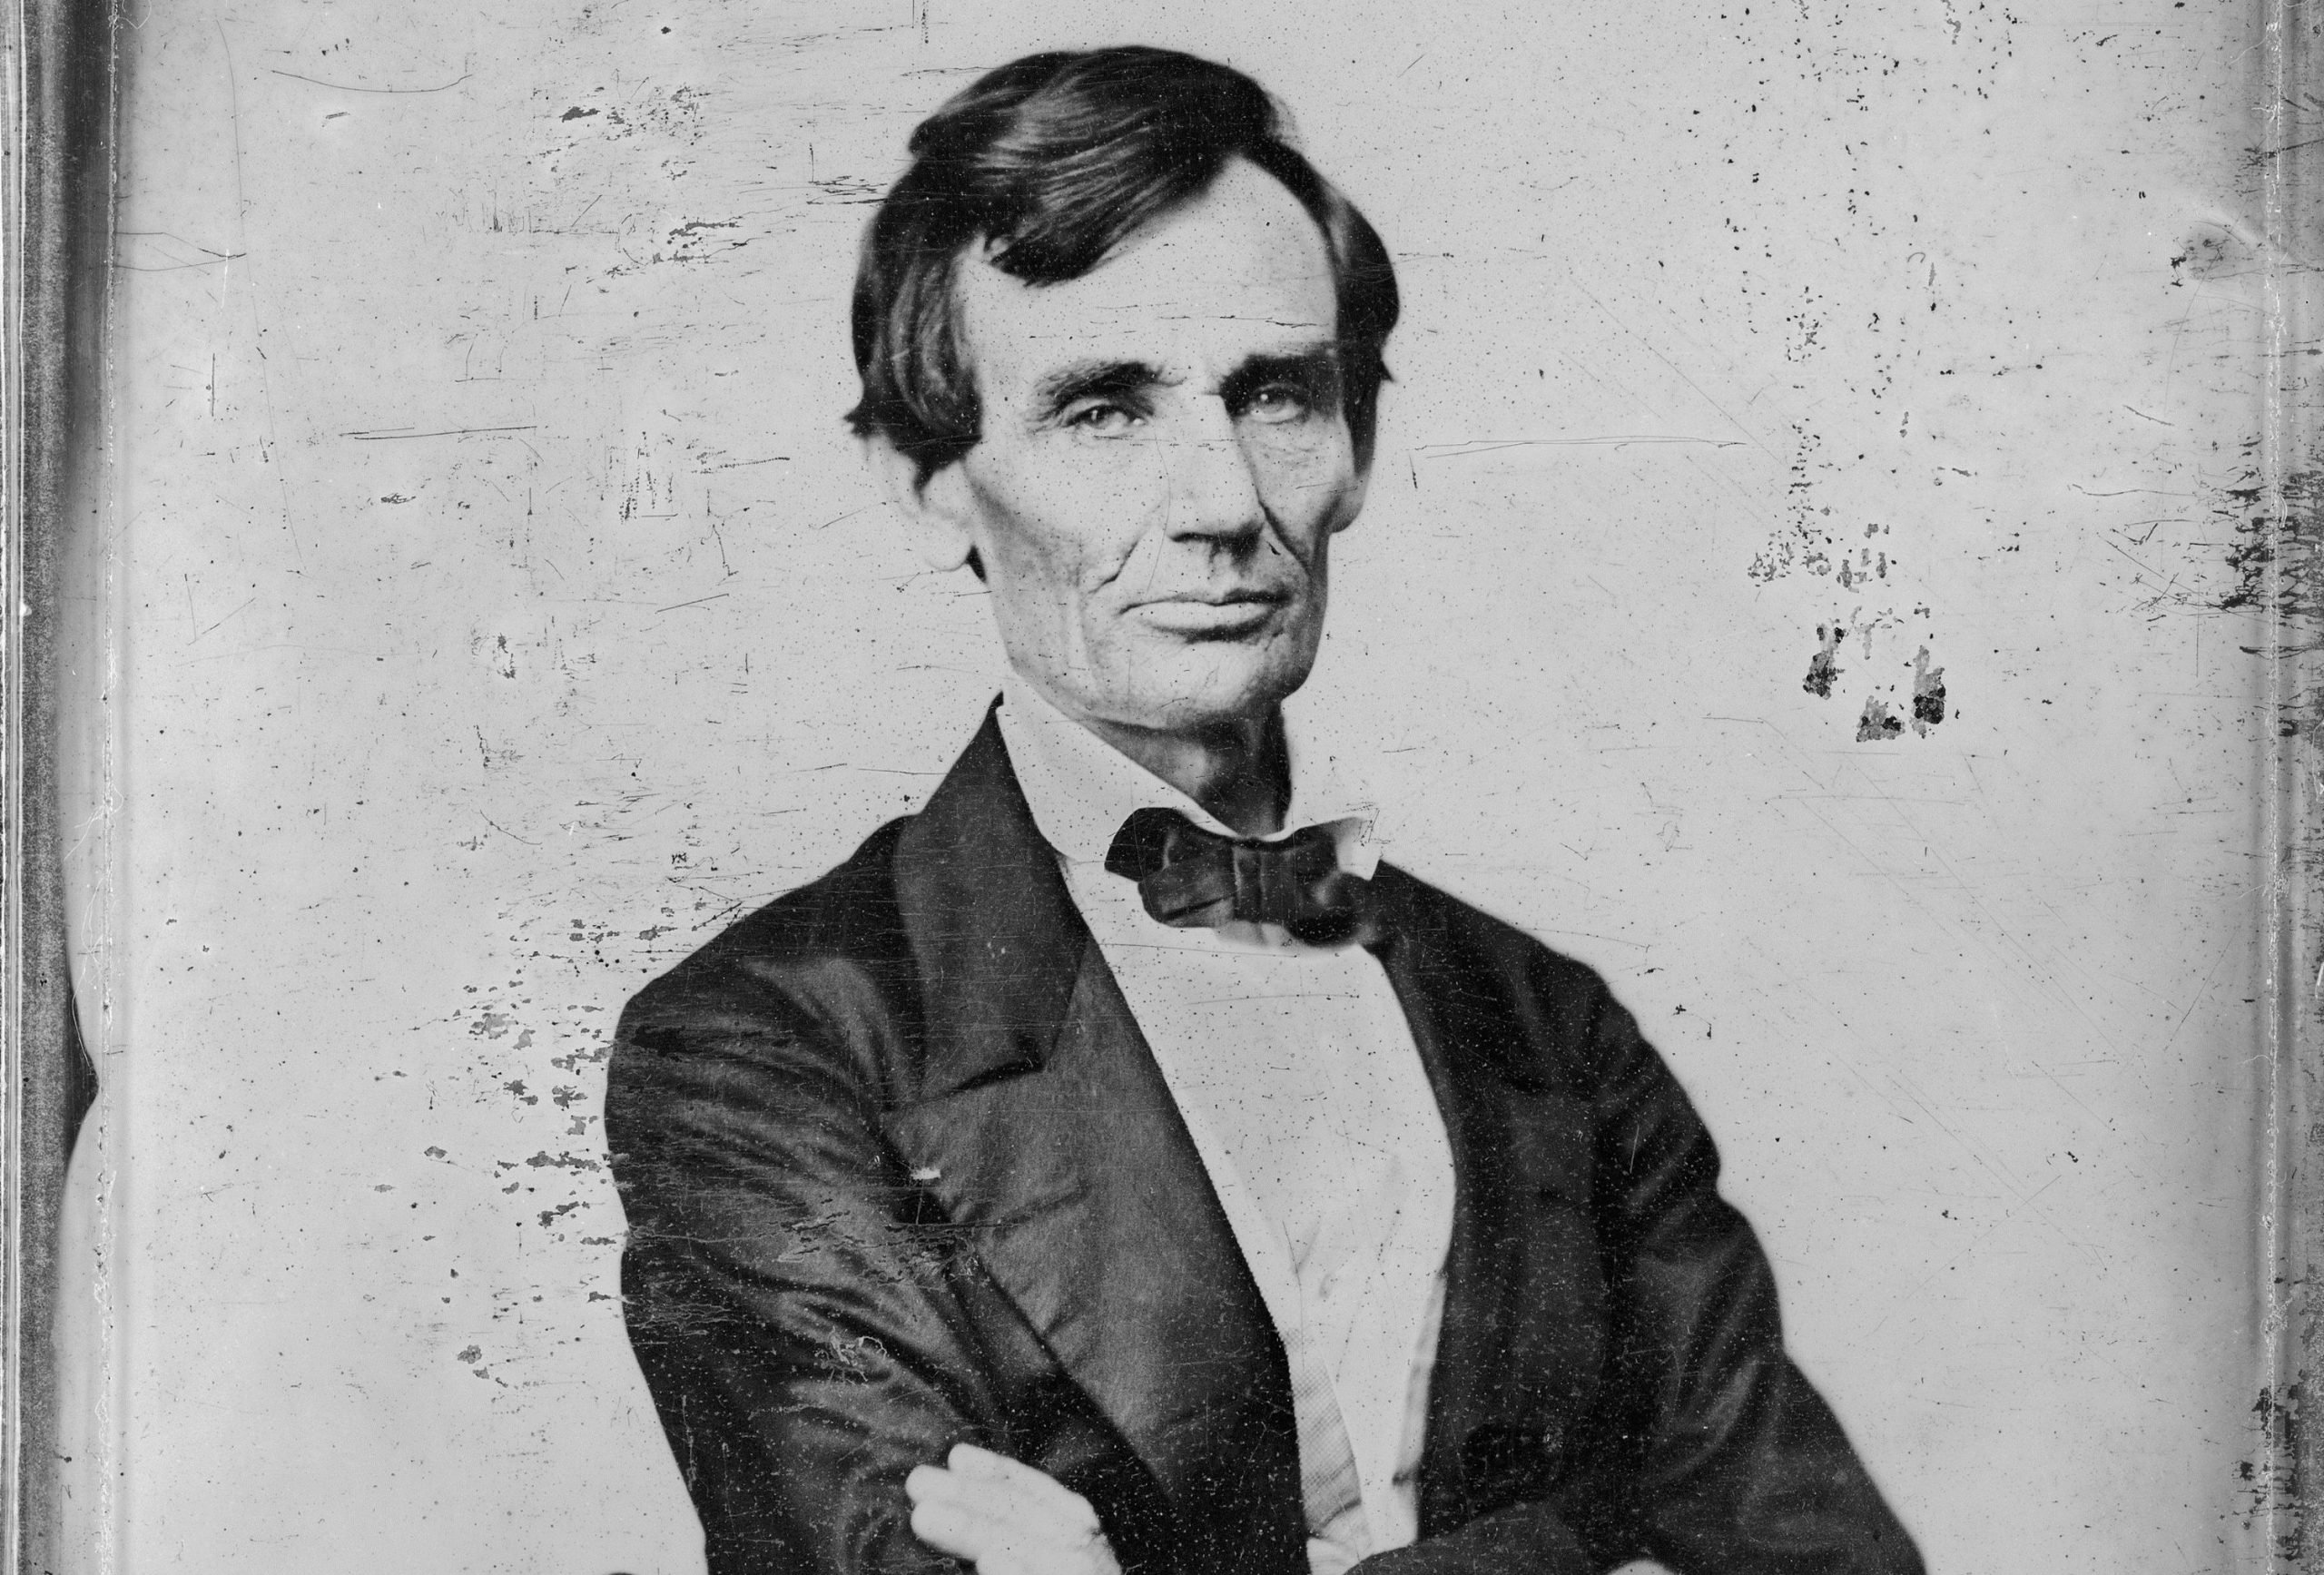 13 Honest Abe said superior position assigned to the white race